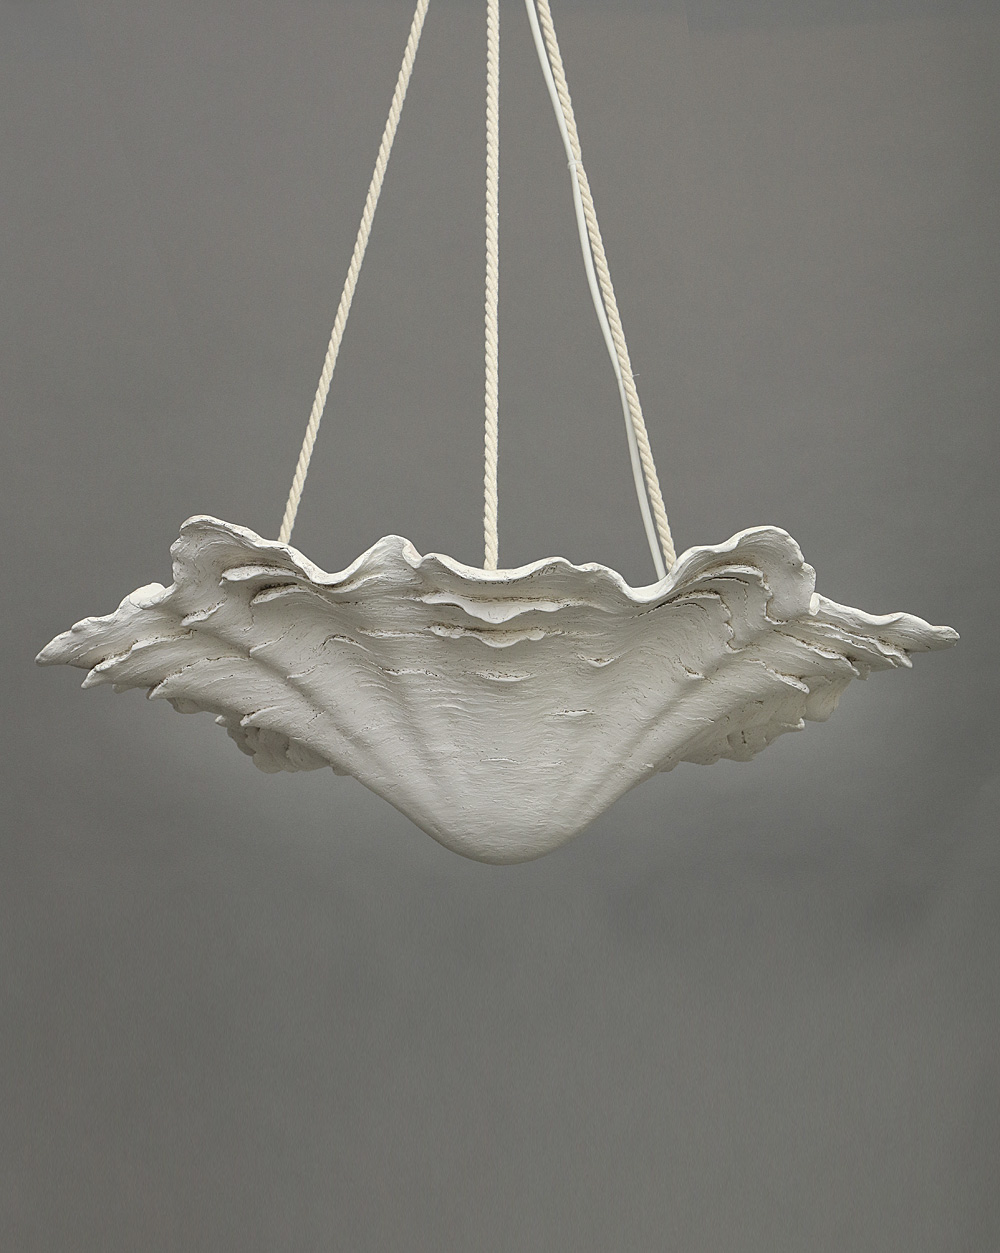 chandelier tier shell r tiered llc three project metals mended oyster